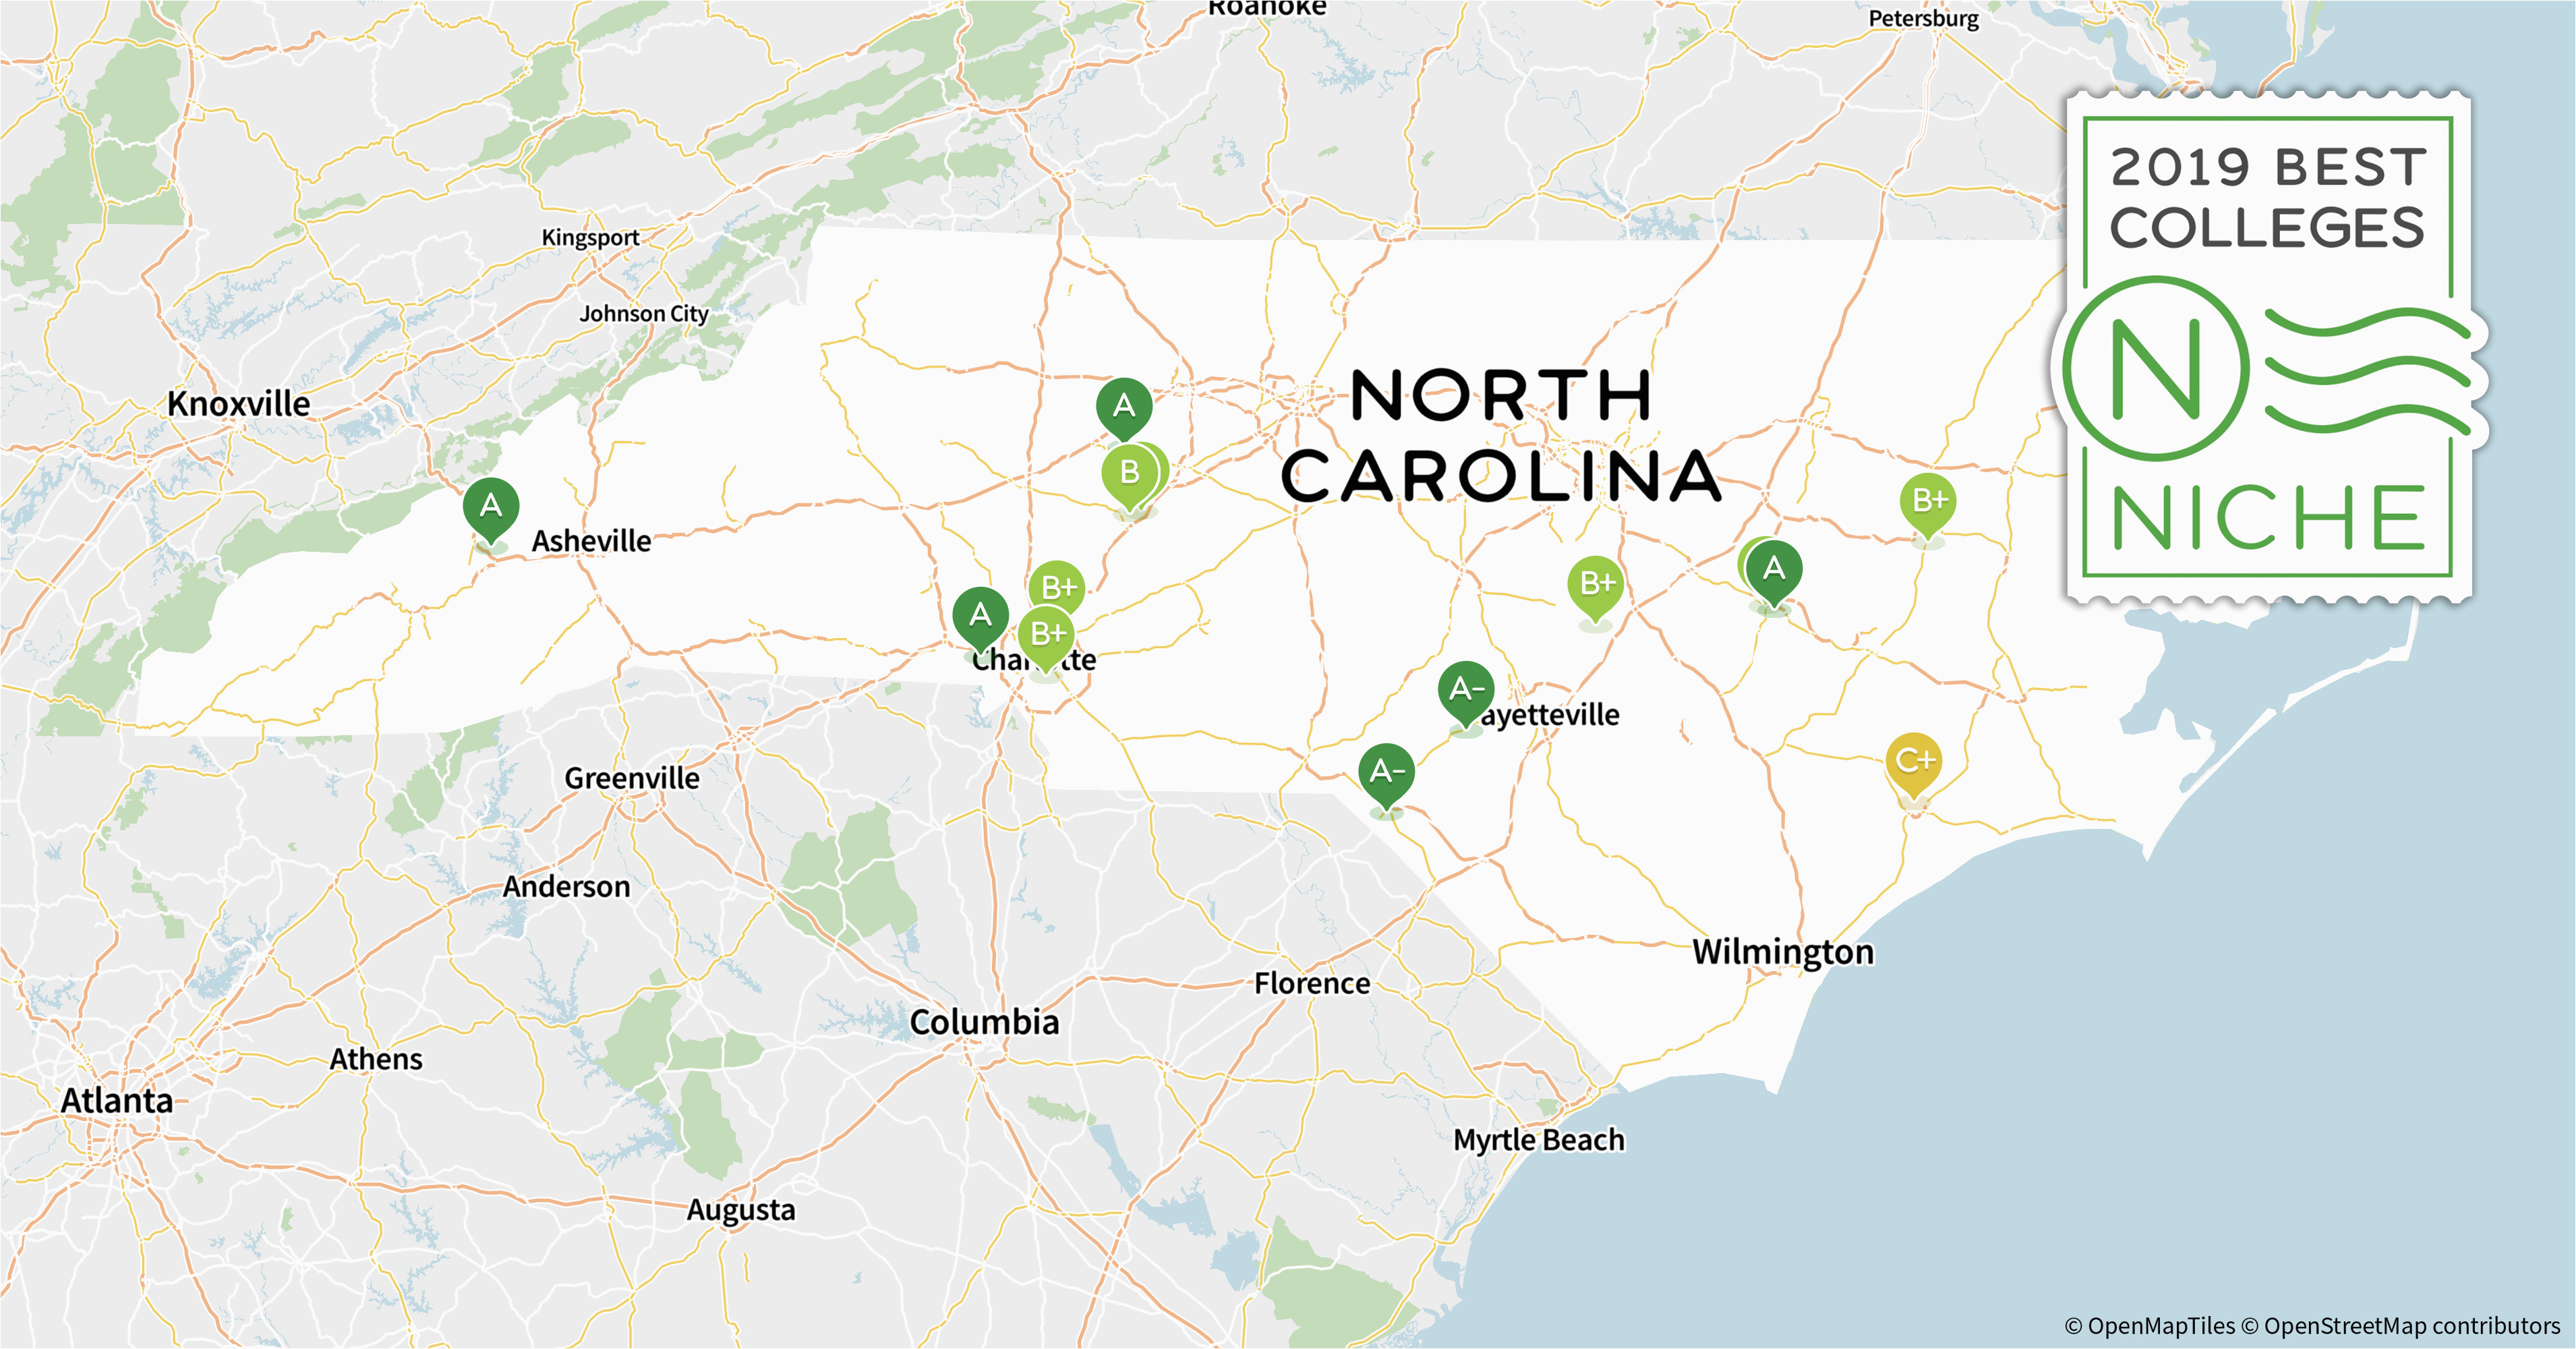 North Carolina Universities Map 2019 Best Colleges In north Carolina Niche